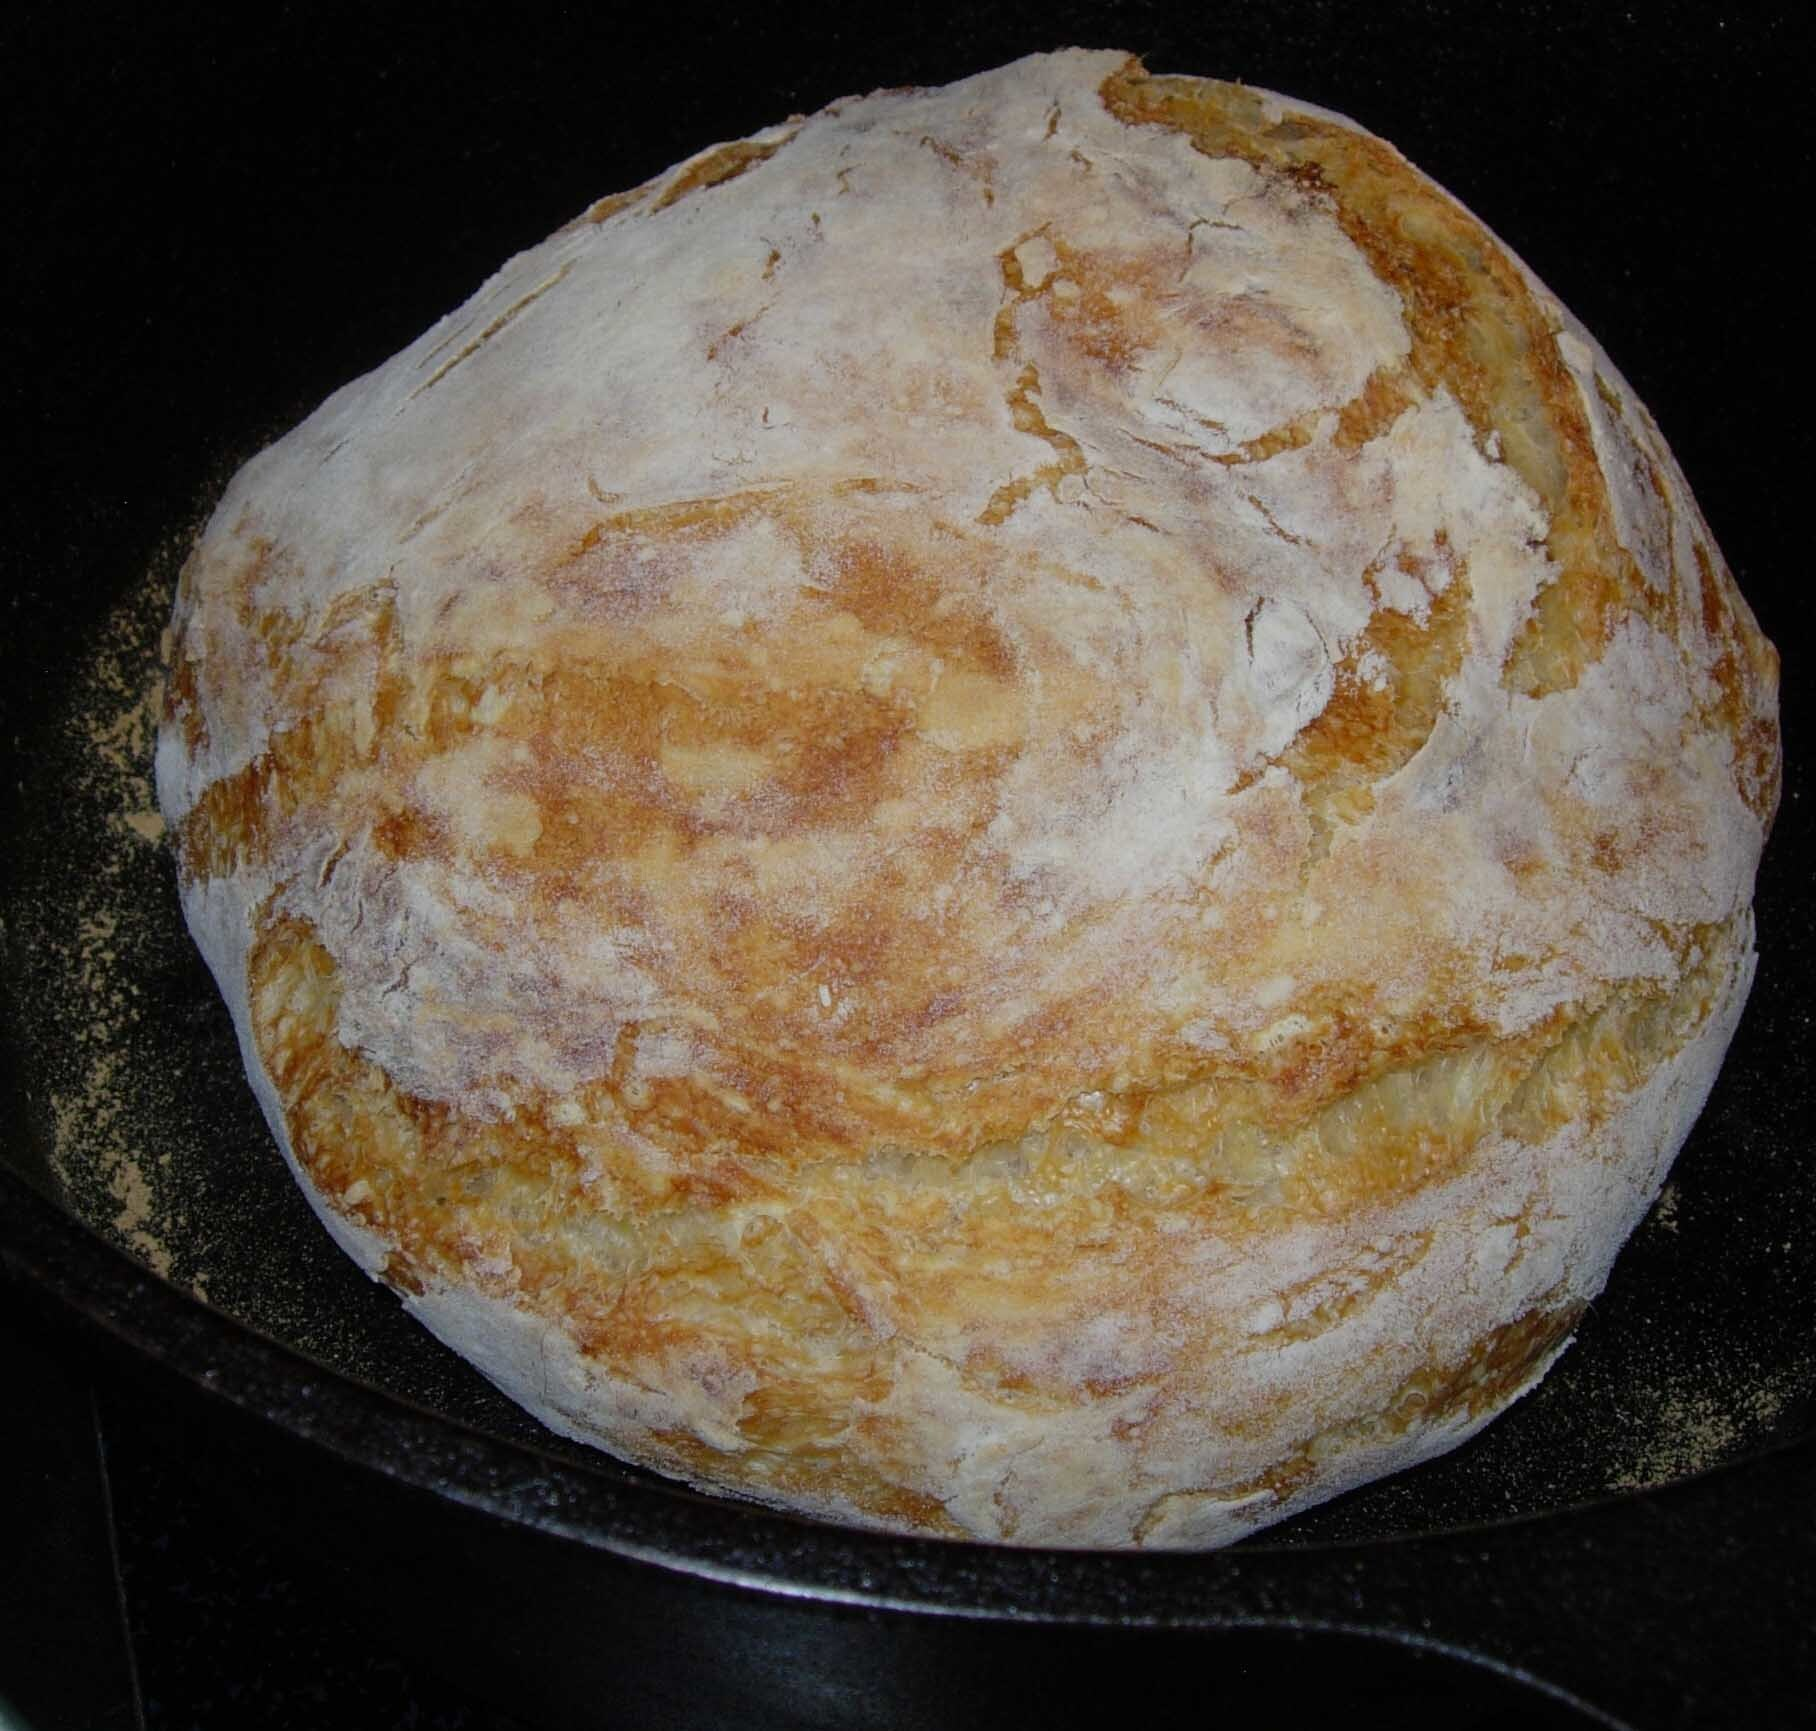 Bread Your 8 Year Old Can Make or 5 Minute, No Knead Artisan Bread